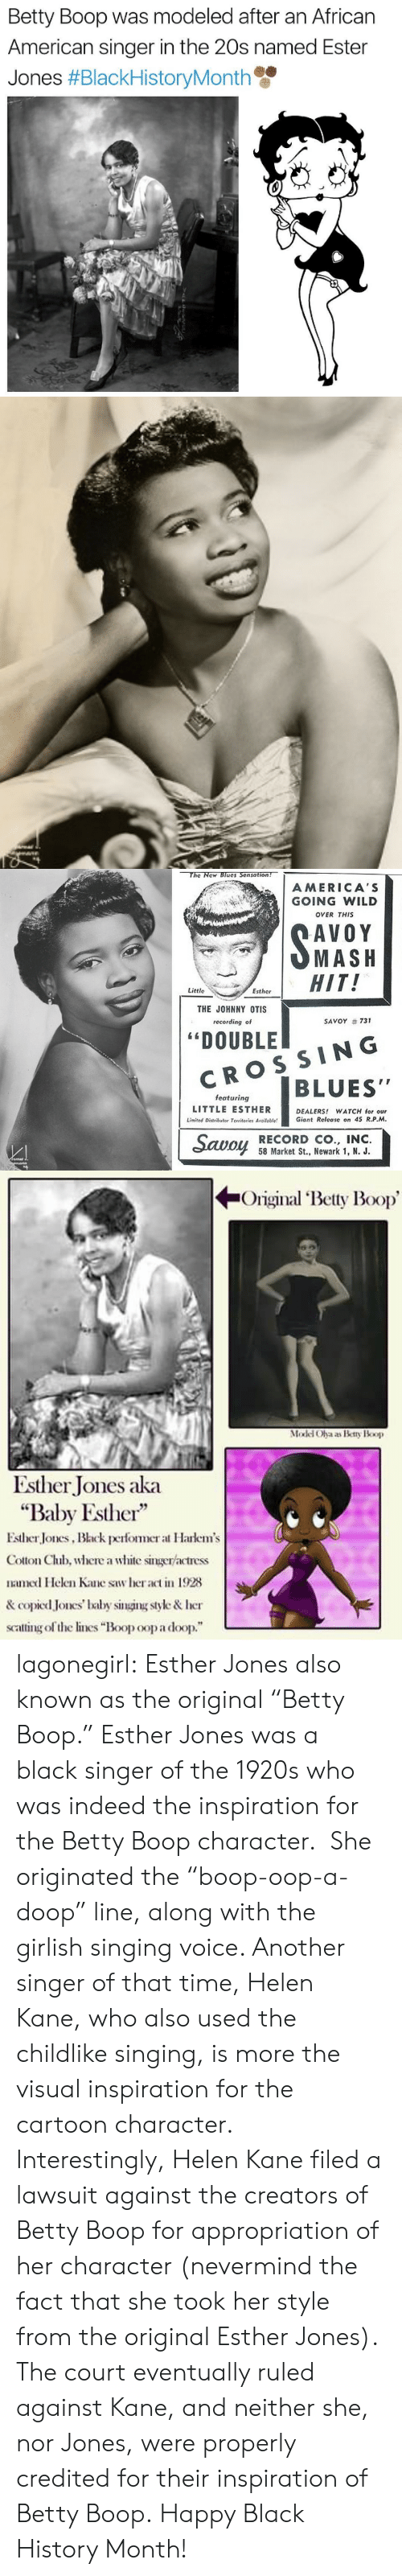 """Copied: Betty Boop was modeled after an African  American singer in the 20s named Ester  Jones #BlackHistoryMonth   The New Blues Sensation!  AMERICA'S  GOING WILD  OVER THIS  AVOY  SMASH  HIT!  Little  Esther  THE JOHNNY OTIS  SAVOY 731  recording of  """"DOUBLE  CROSSING  BLUES""""  featuring  LITTLE ESTHER  DEALERS! WATCH for our  Giant Release on 45 R.P.M.  Limited Distributor Territories Avoiloble!  Savoy  RECORD CO., INC.  58 Market St., Newark 1, N. J.  domal  dmann   Original Betty Boop  Model Olya as Betty Boop  Esther Jones aka  """"Baby Esther""""  Esther Jones, Black pefomer at Harkem's  Cotton Chlub, where a white singer/actress  named Helen Kane saw her act in 1928  & copied Jones' baby singing style & her  scating of the lines """"Boop oop a doop."""" lagonegirl:  Esther Jones also known as the original """"Betty Boop.""""     Esther Jones was a black singer of the 1920s who was indeed the inspiration for the Betty Boop character. She originated the """"boop-oop-a-doop"""" line, along with the girlish singing voice. Another singer of that time, Helen Kane, who also used the childlike singing, is more the visual inspiration for the cartoon character. Interestingly, Helen Kane filed a lawsuit against the creators of Betty Boop for appropriation of her character (nevermind the fact that she took her style from the original Esther Jones). The court eventually ruled against Kane, and neither she, nor Jones, were properly credited for their inspiration of Betty Boop.   Happy Black History Month!"""